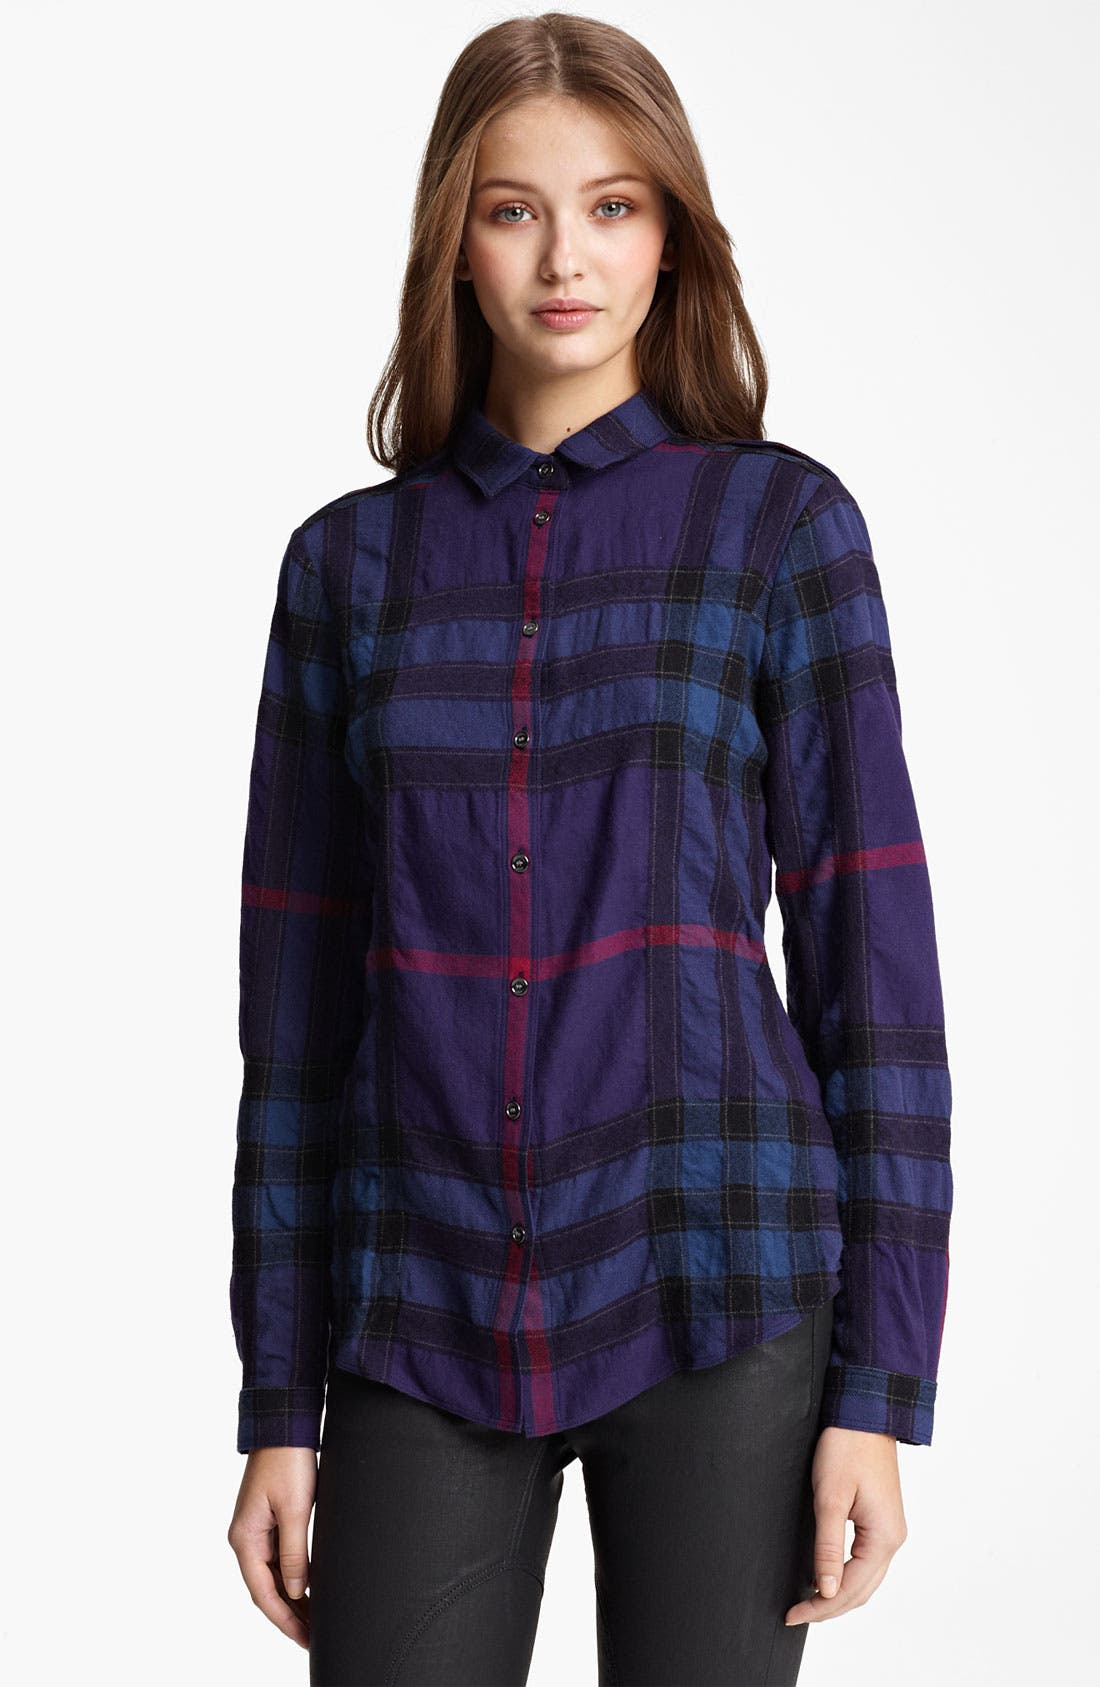 Alternate Image 1 Selected - Burberry Brit Check Print Flannel Top